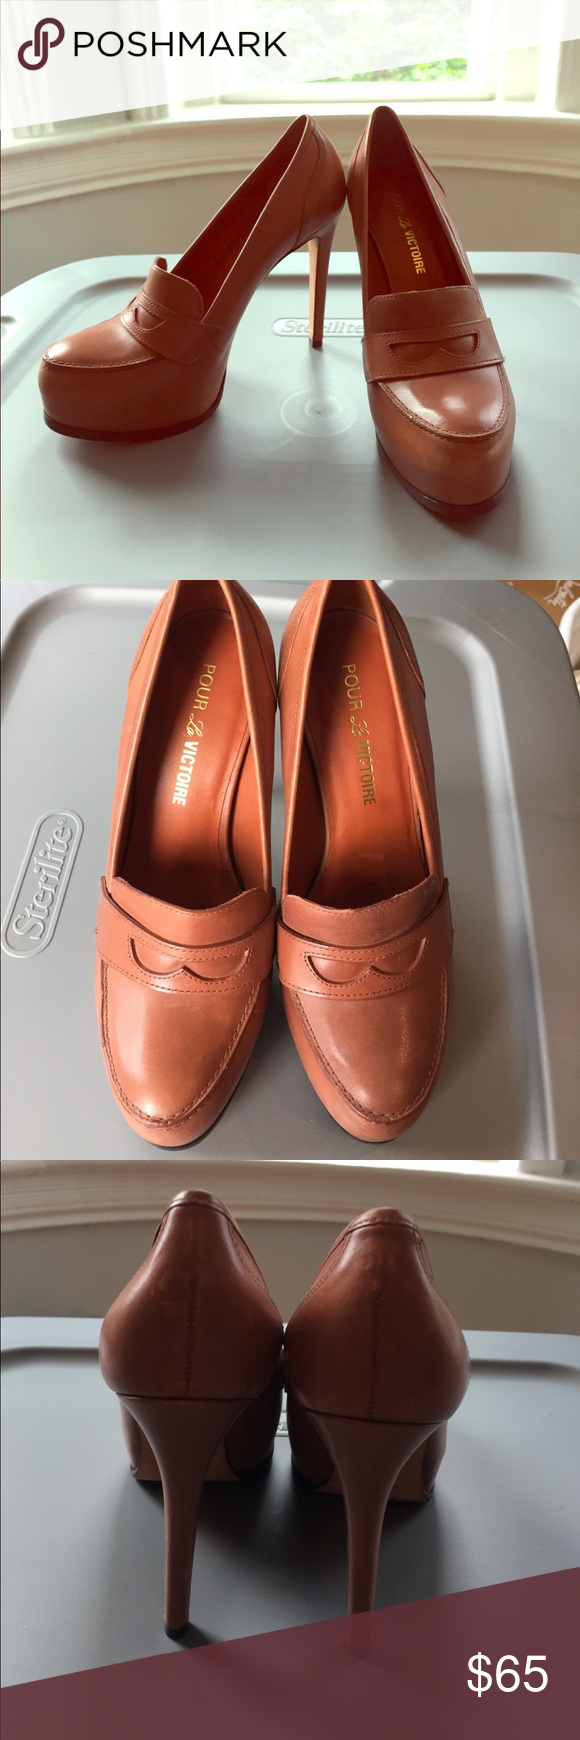 b7e99297ee0 PLV Penny loafer Heels Light brown leather loafer-style PLV heels. Perfect  for school girl or office. Only worn once and in great condition! Pour la  ...